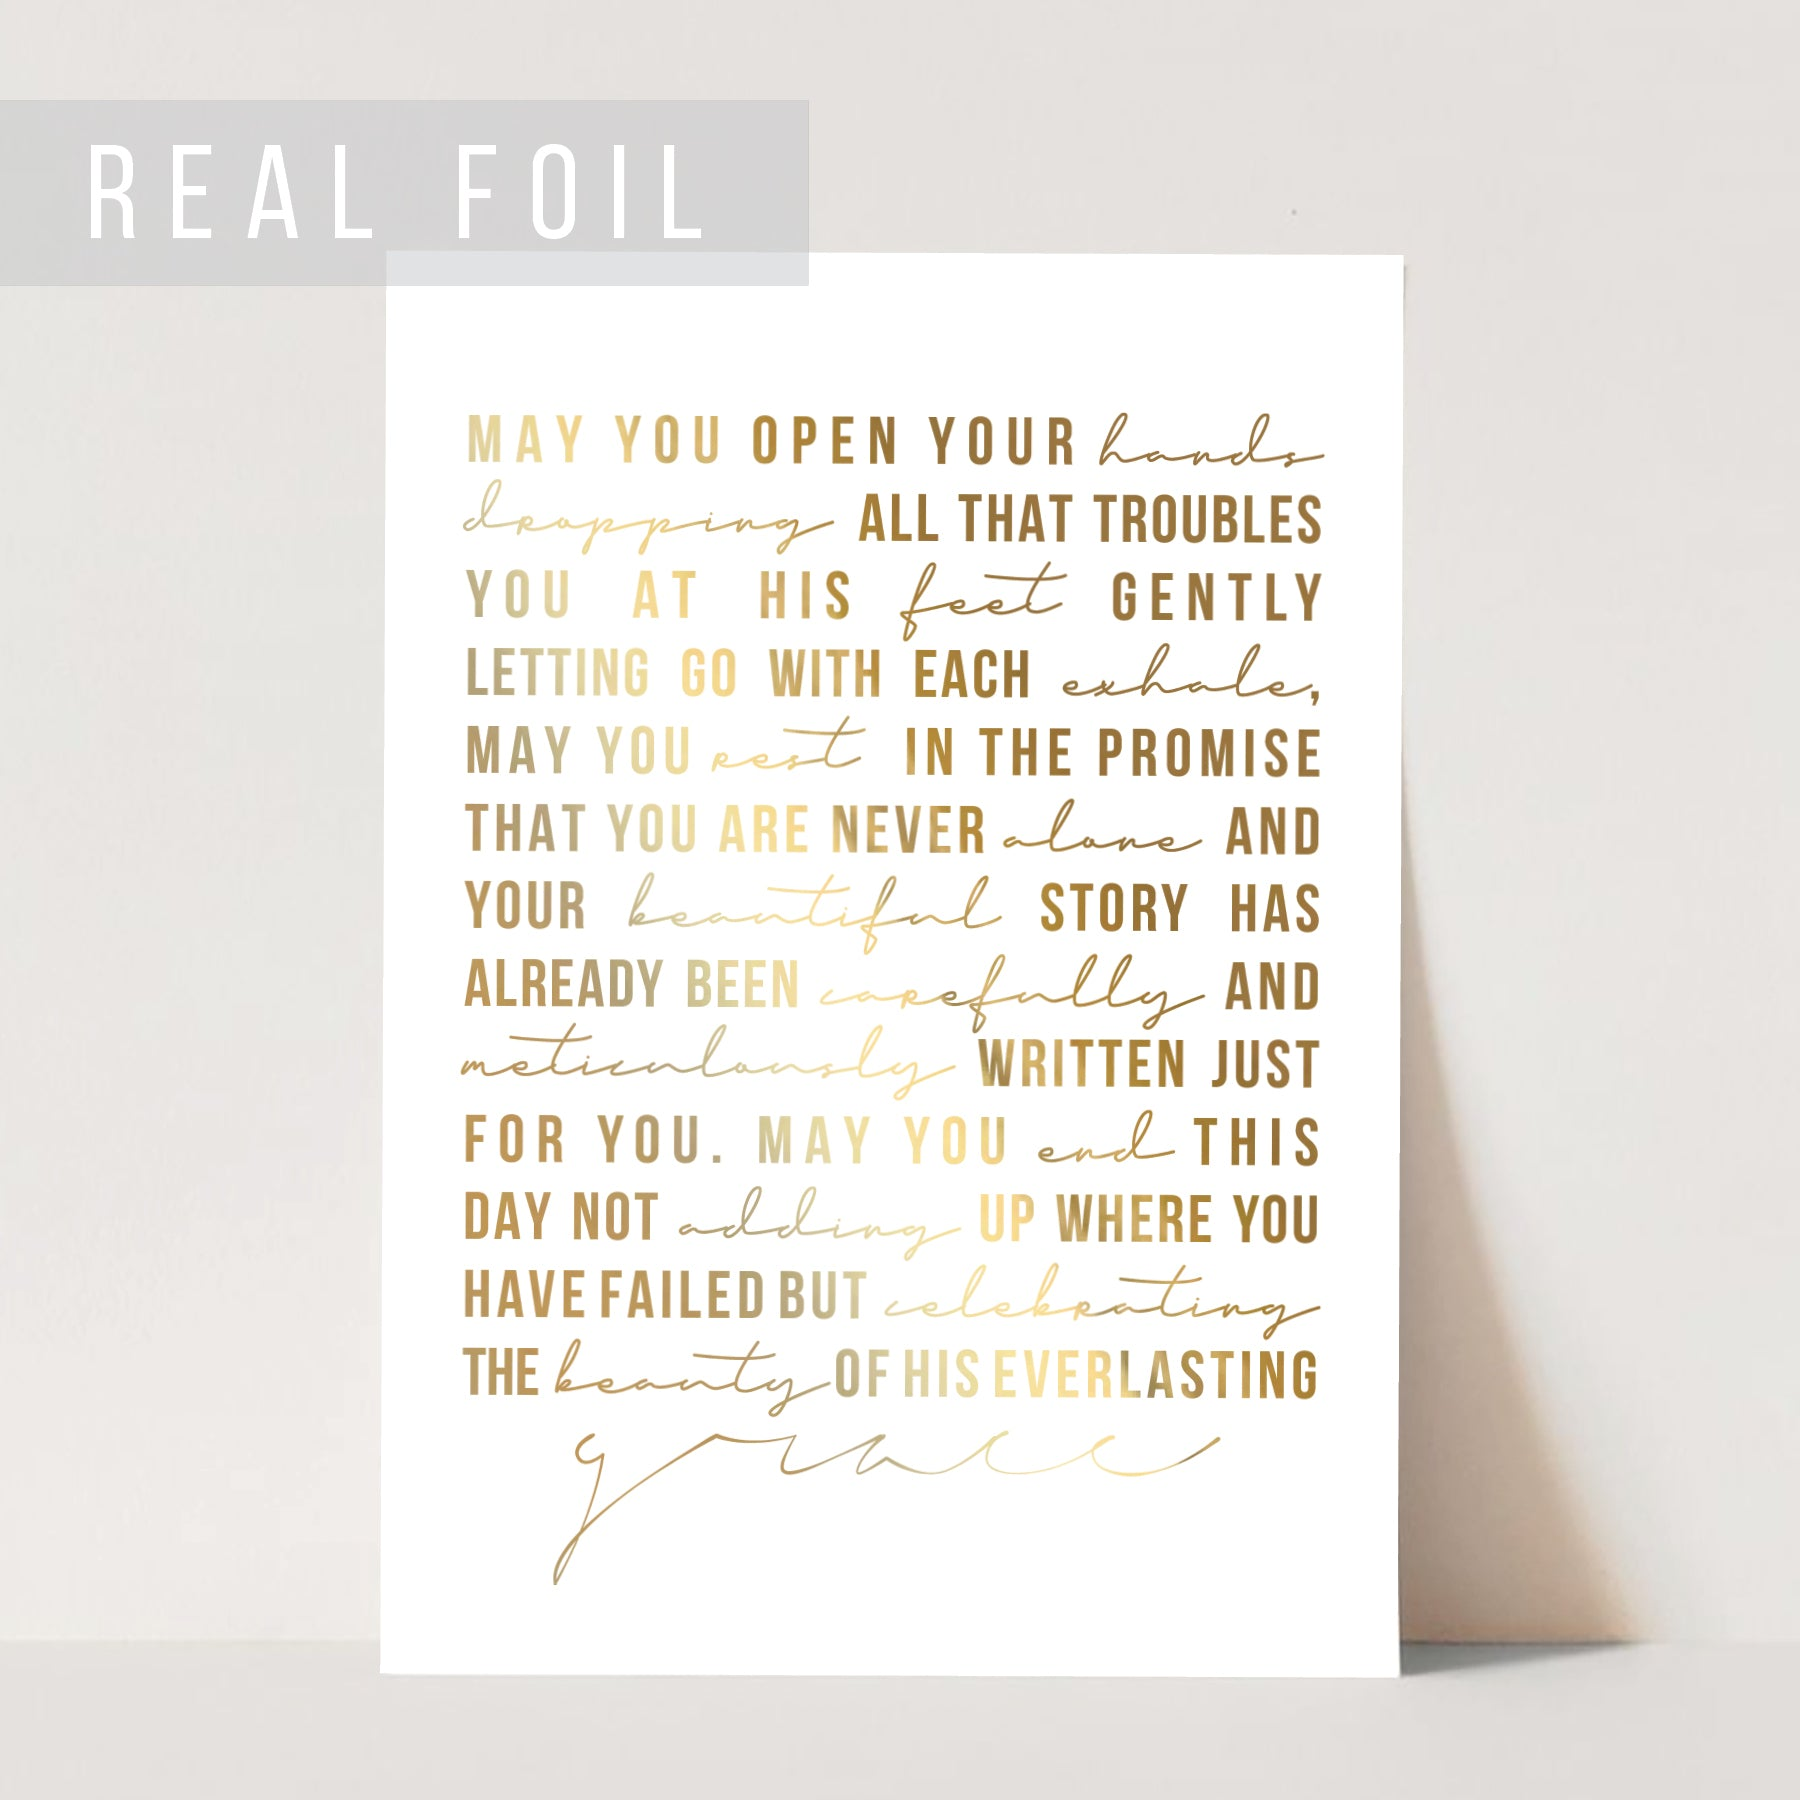 May You Open Your Hands Dropping All that Troubles You ... The Beauty of His Everlasting Grace Foiled Art Print